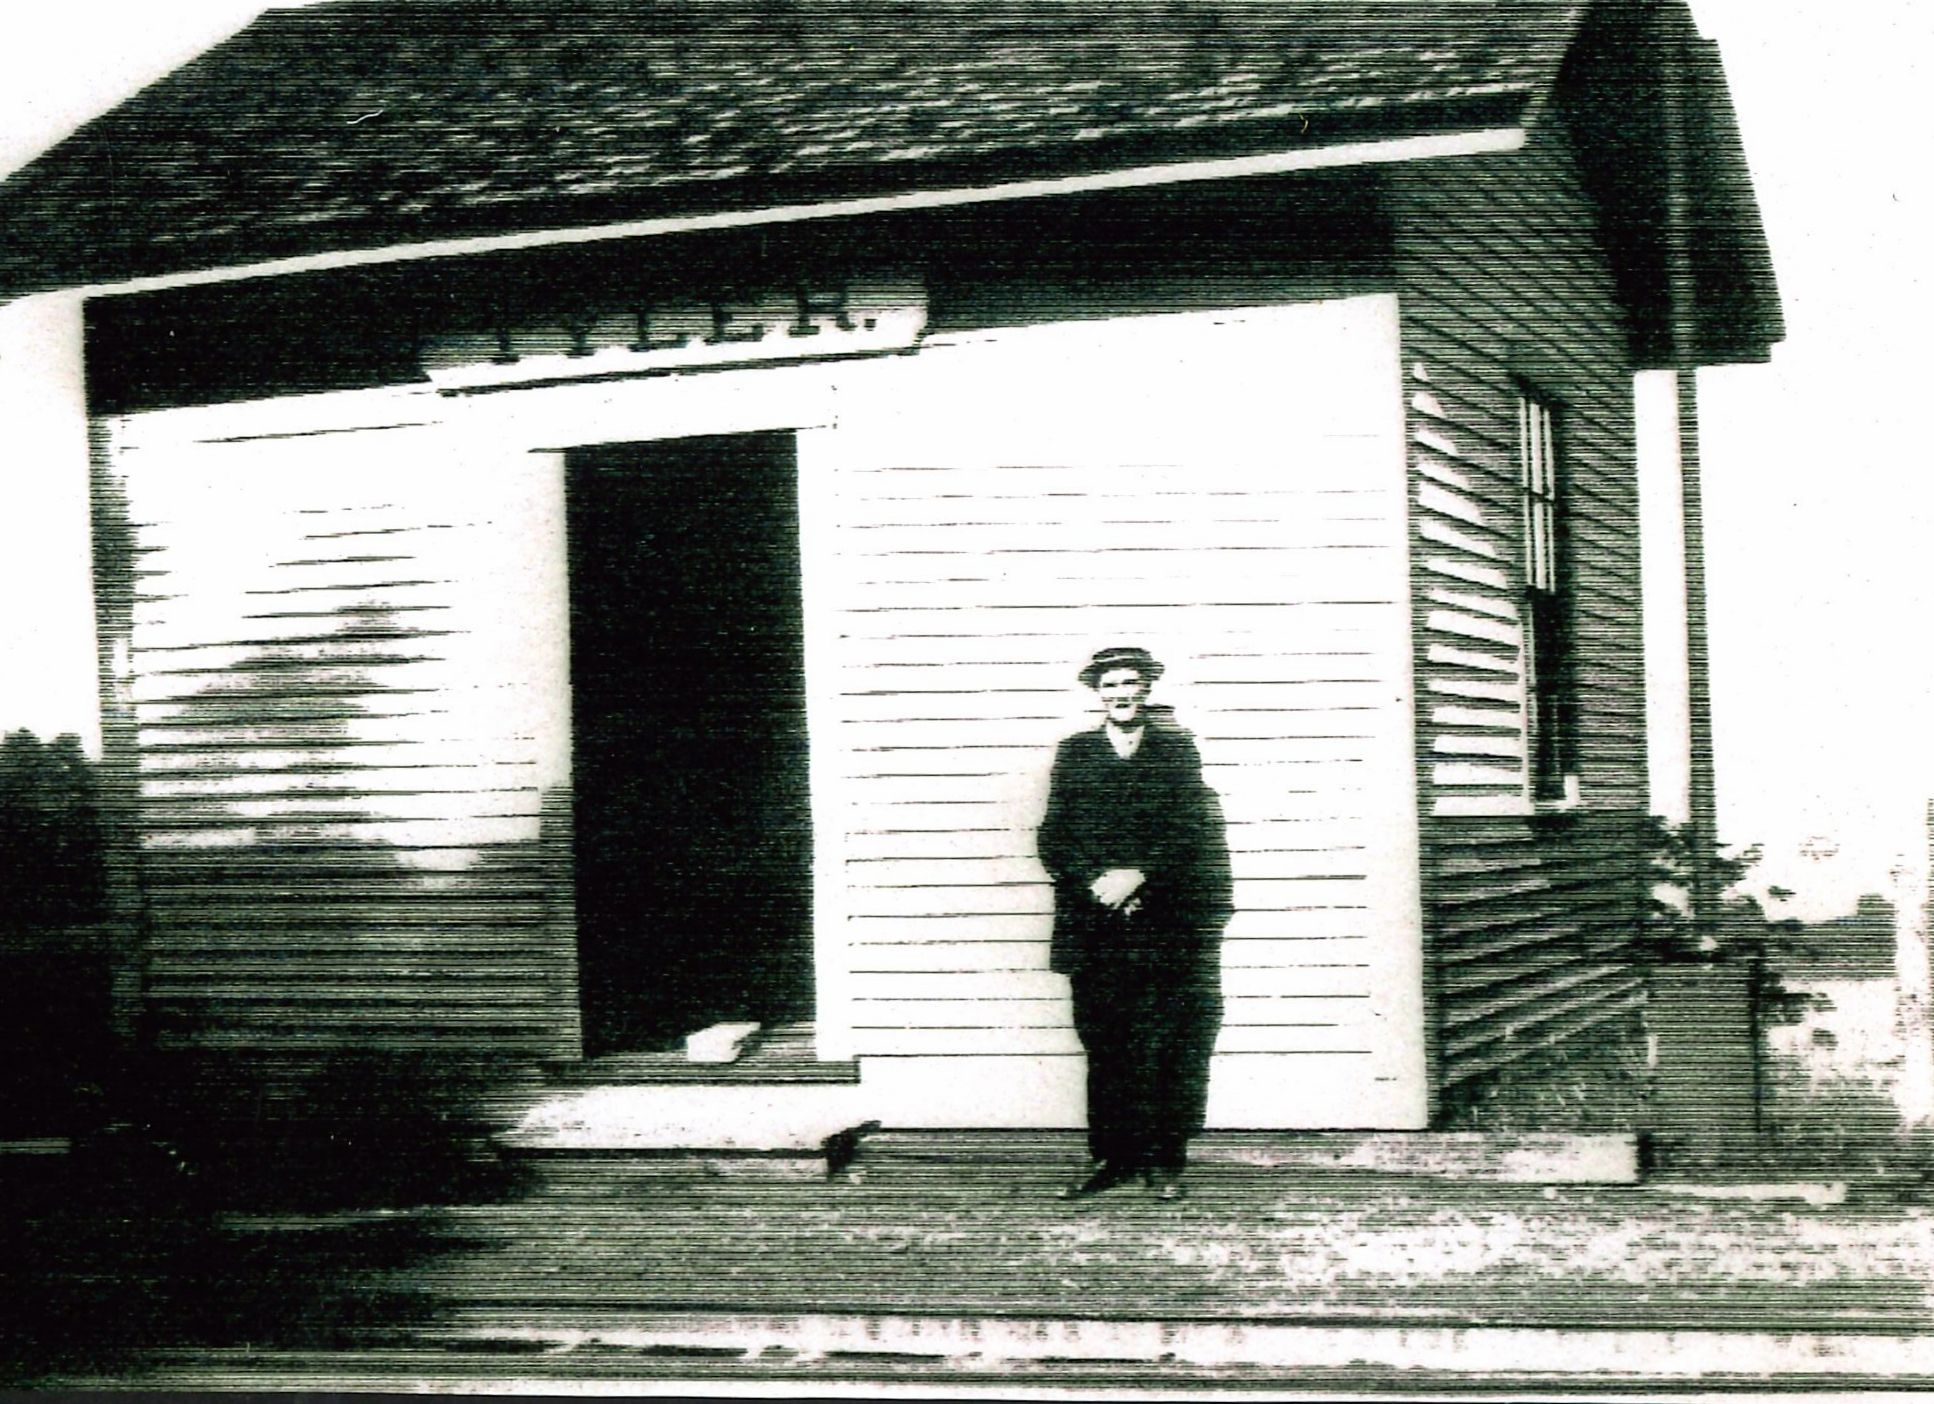 Image of the Tyler Station.  The gentleman standing in front of the station is identified as Thomas Card (1871-1957).  Mr. Card lived in the Blackwater District close to Tyler Station, and worked in Contoocook Village as a machinist at Kingsbury & Davis.  Perhaps on this day he was taking the train from Contoocook to Tyler for his lunch break!  Many accounts of K & D workers say they went home for lunch.